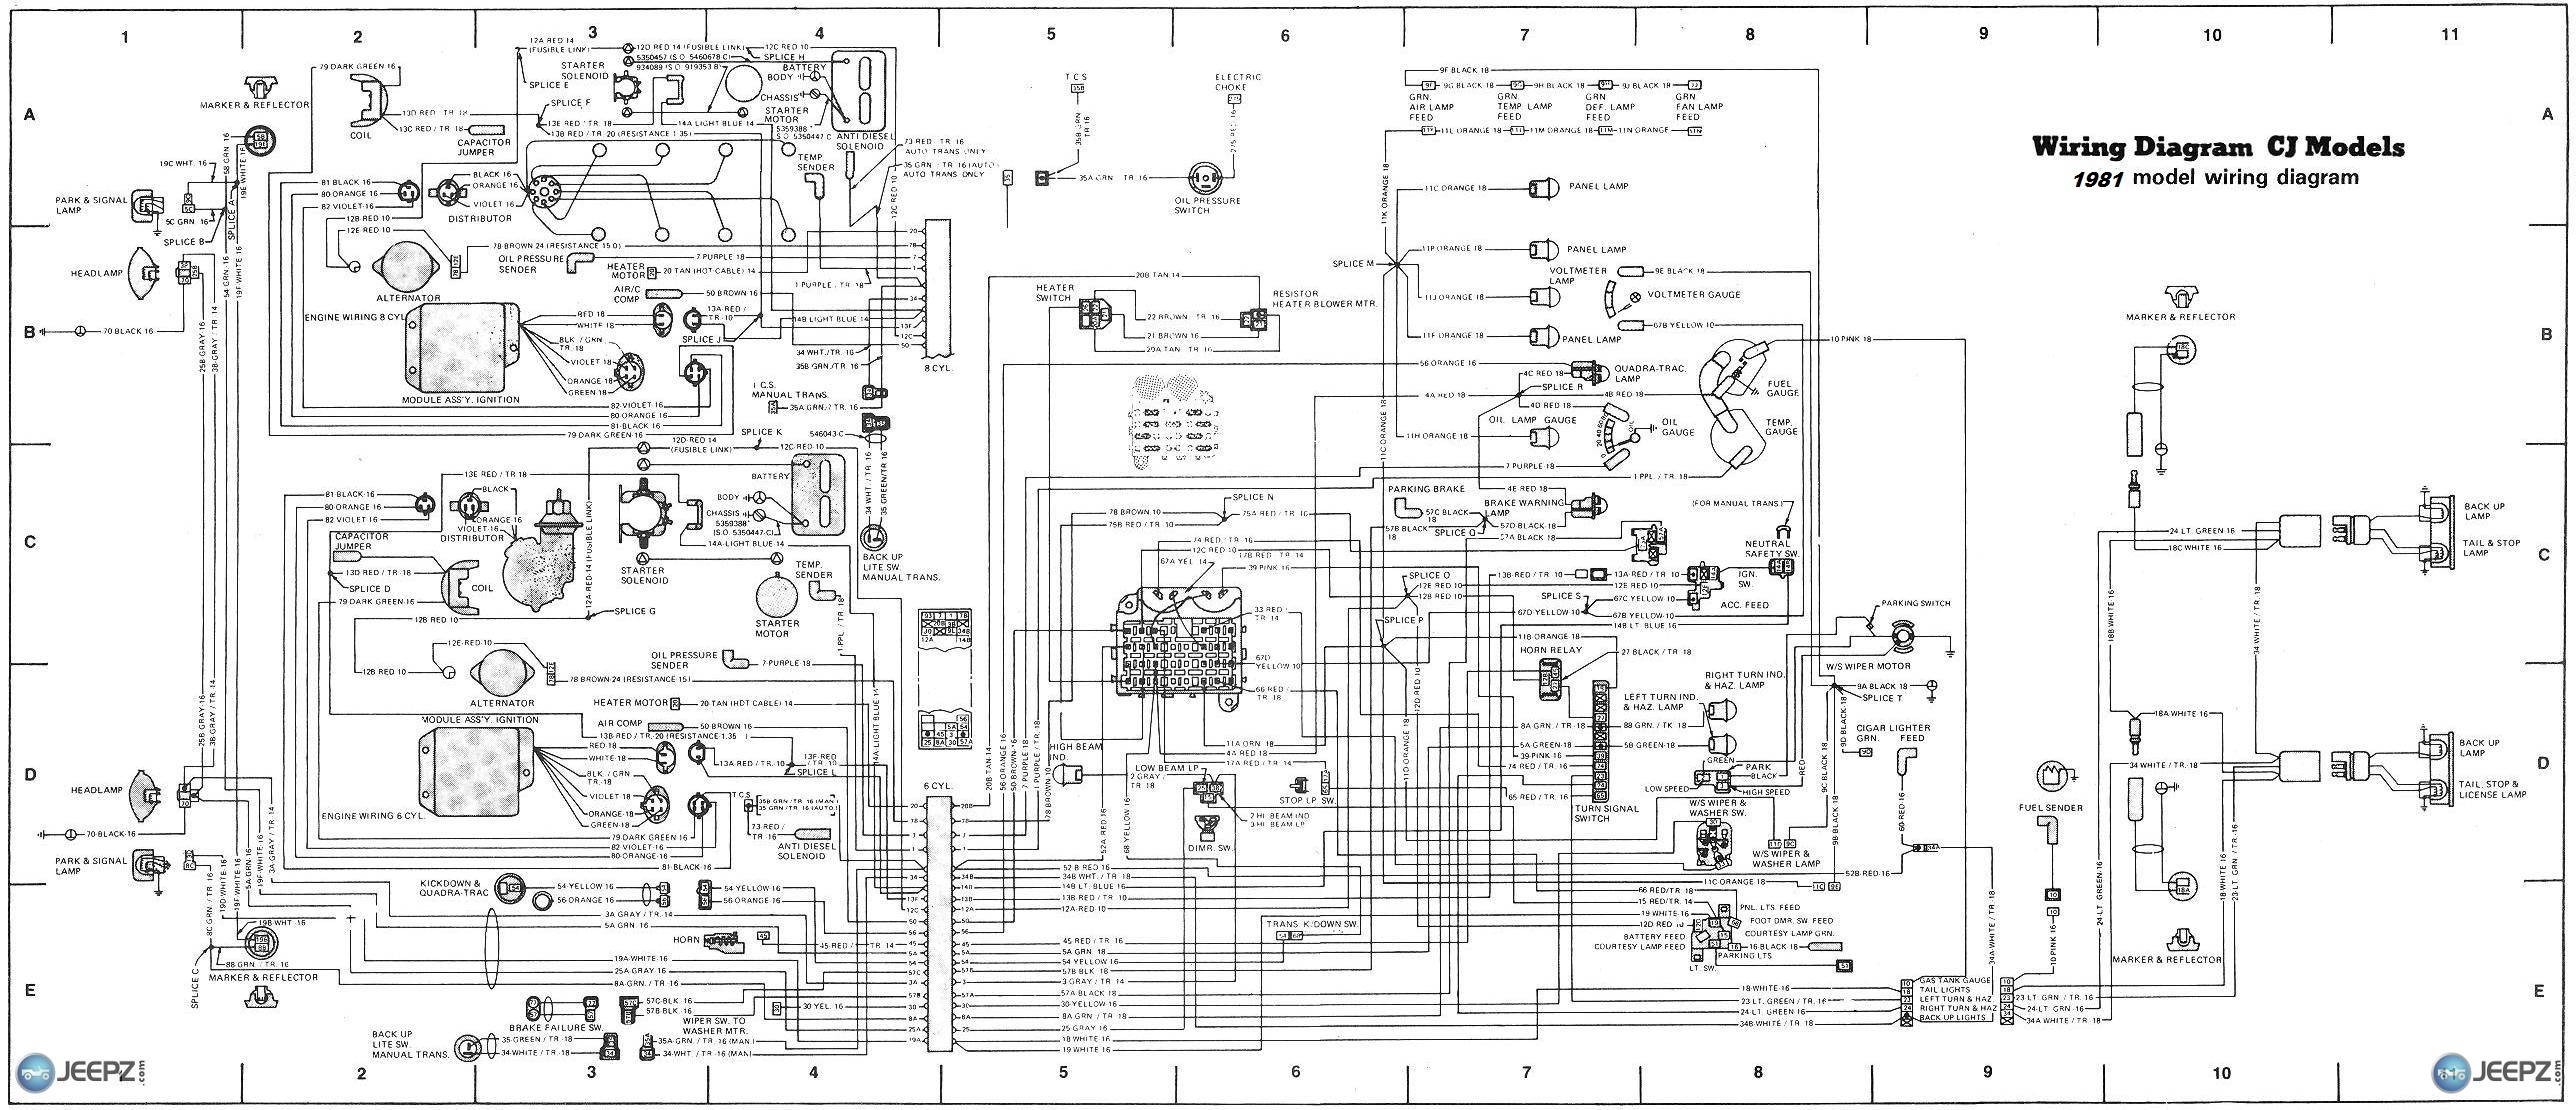 81 Jeep Cj7 Wiring - Wiring Diagram Networks | 1980 Jeep Wiring Diagram |  | Wiring Diagram Networks - blogger